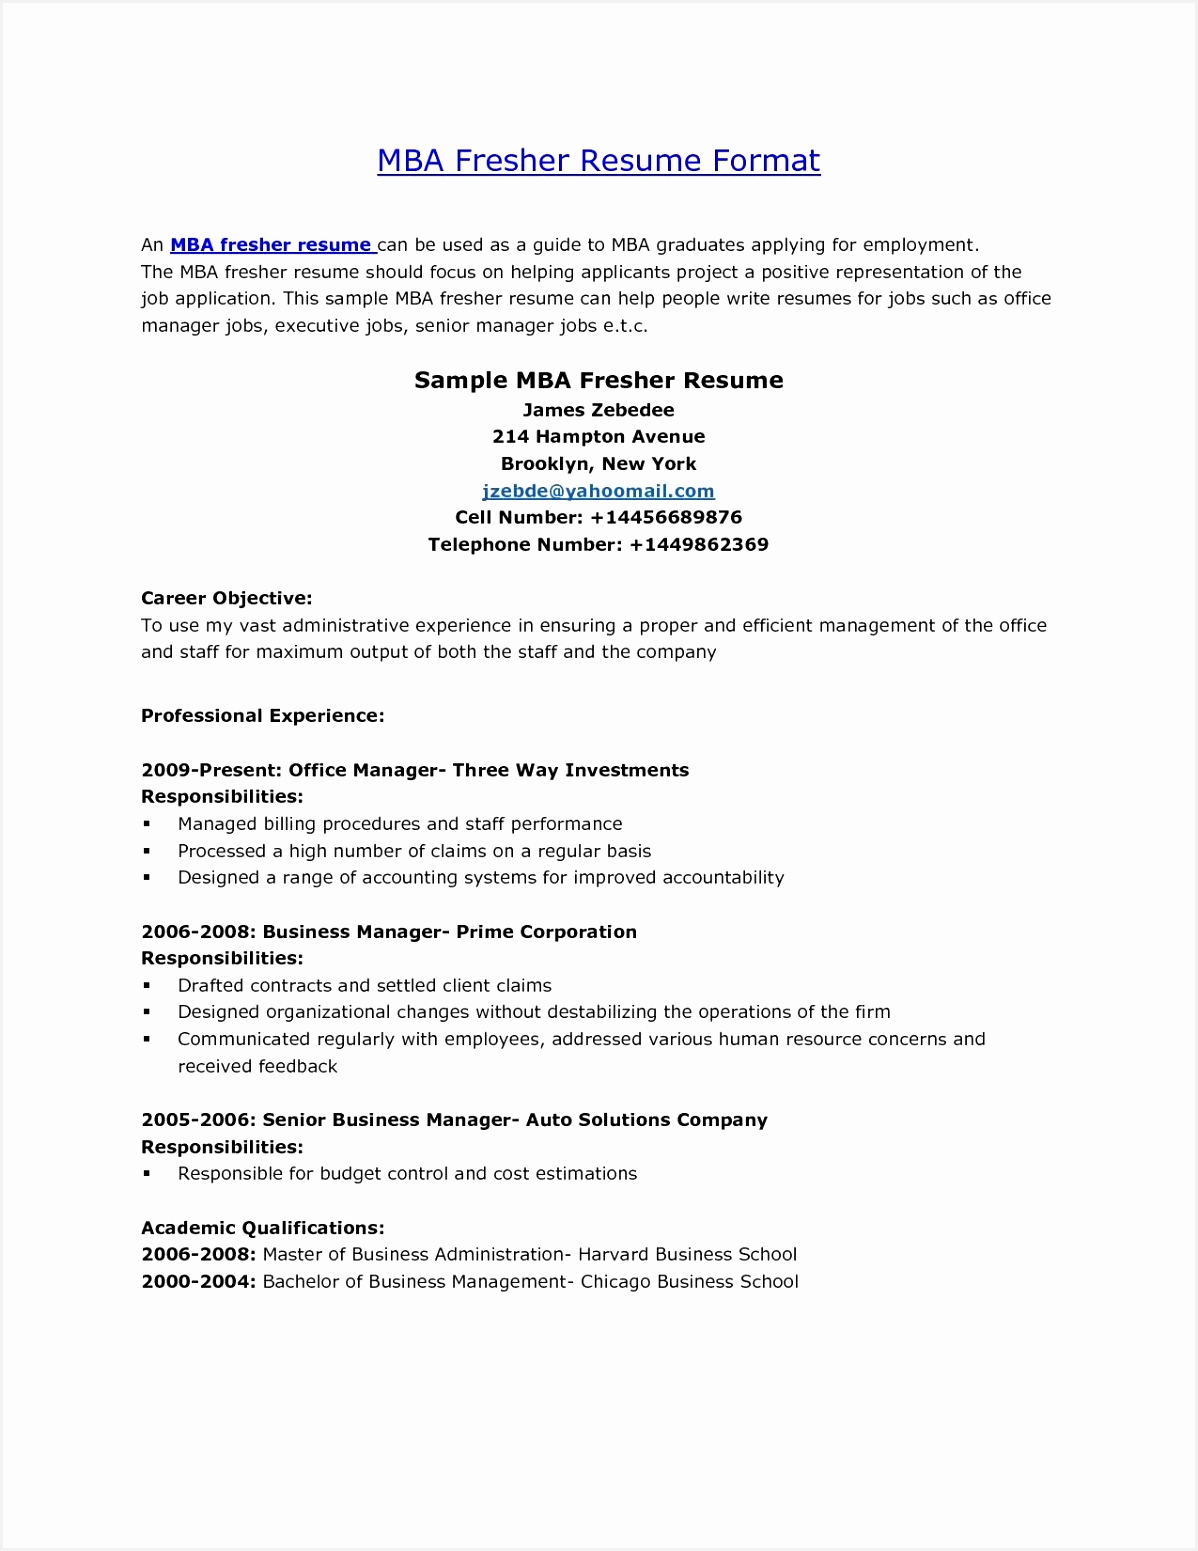 Contract Stress Engineer Sample Resume H7ght Luxury Awesome Resume for Tele Engineer Fresher Resume Ideas Of Contract Stress Engineer Sample Resume Gjkbn Best Of Hvac Estimator Mechanical Engineer Cv Resume for Sales Beautiful